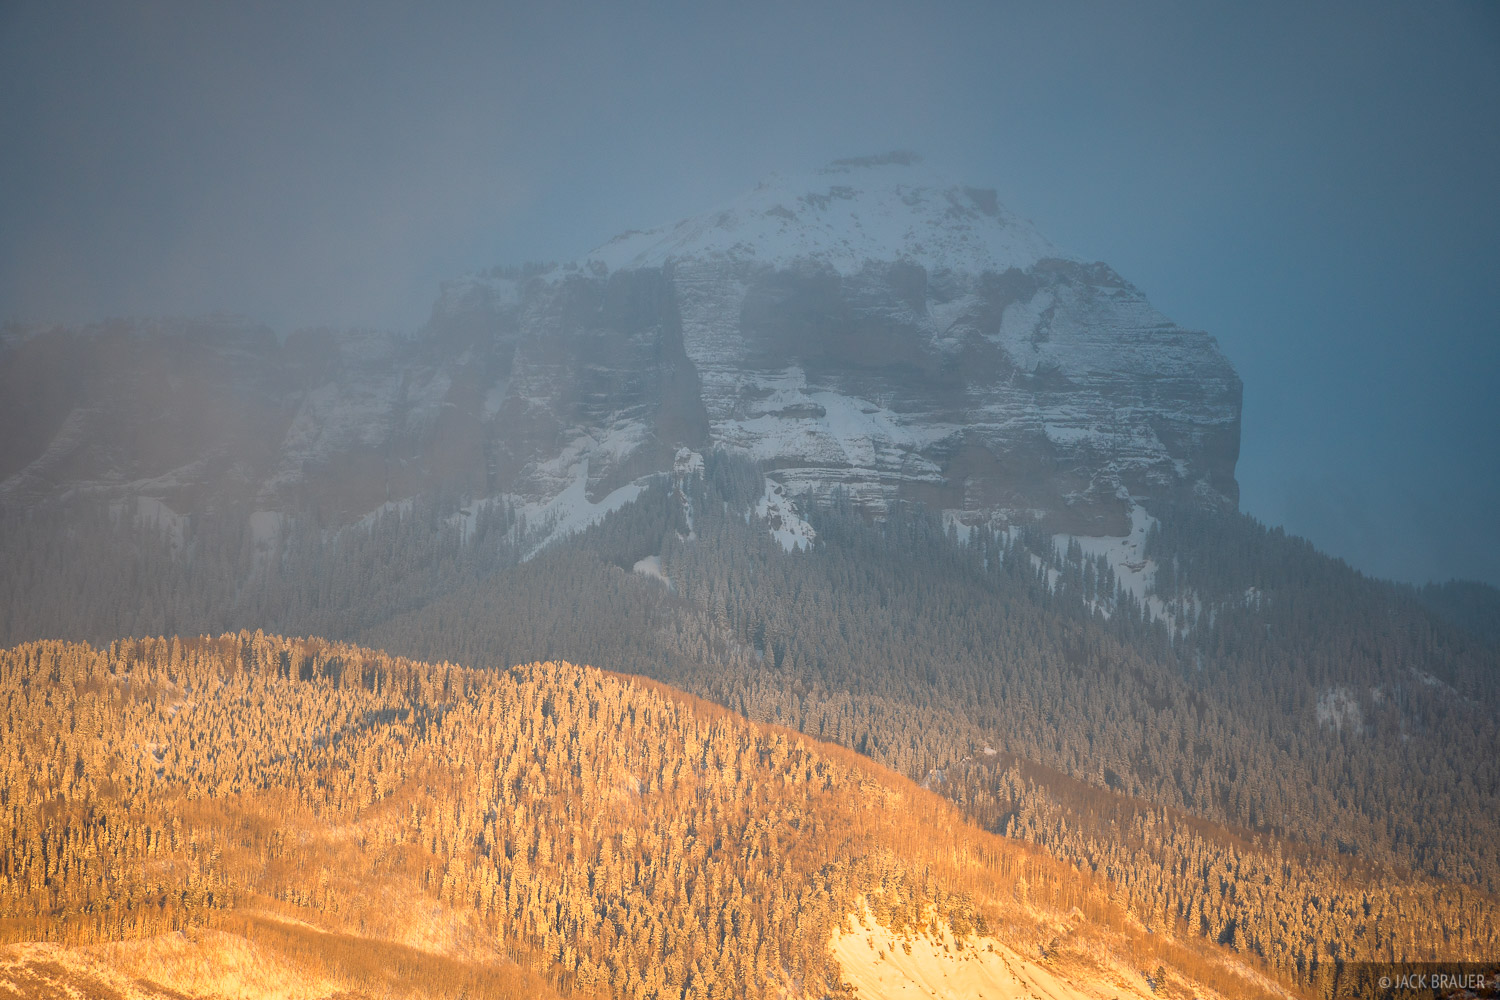 Evening light creeps up towards Courthouse Mountain, shrouded in a winter snowstorm.